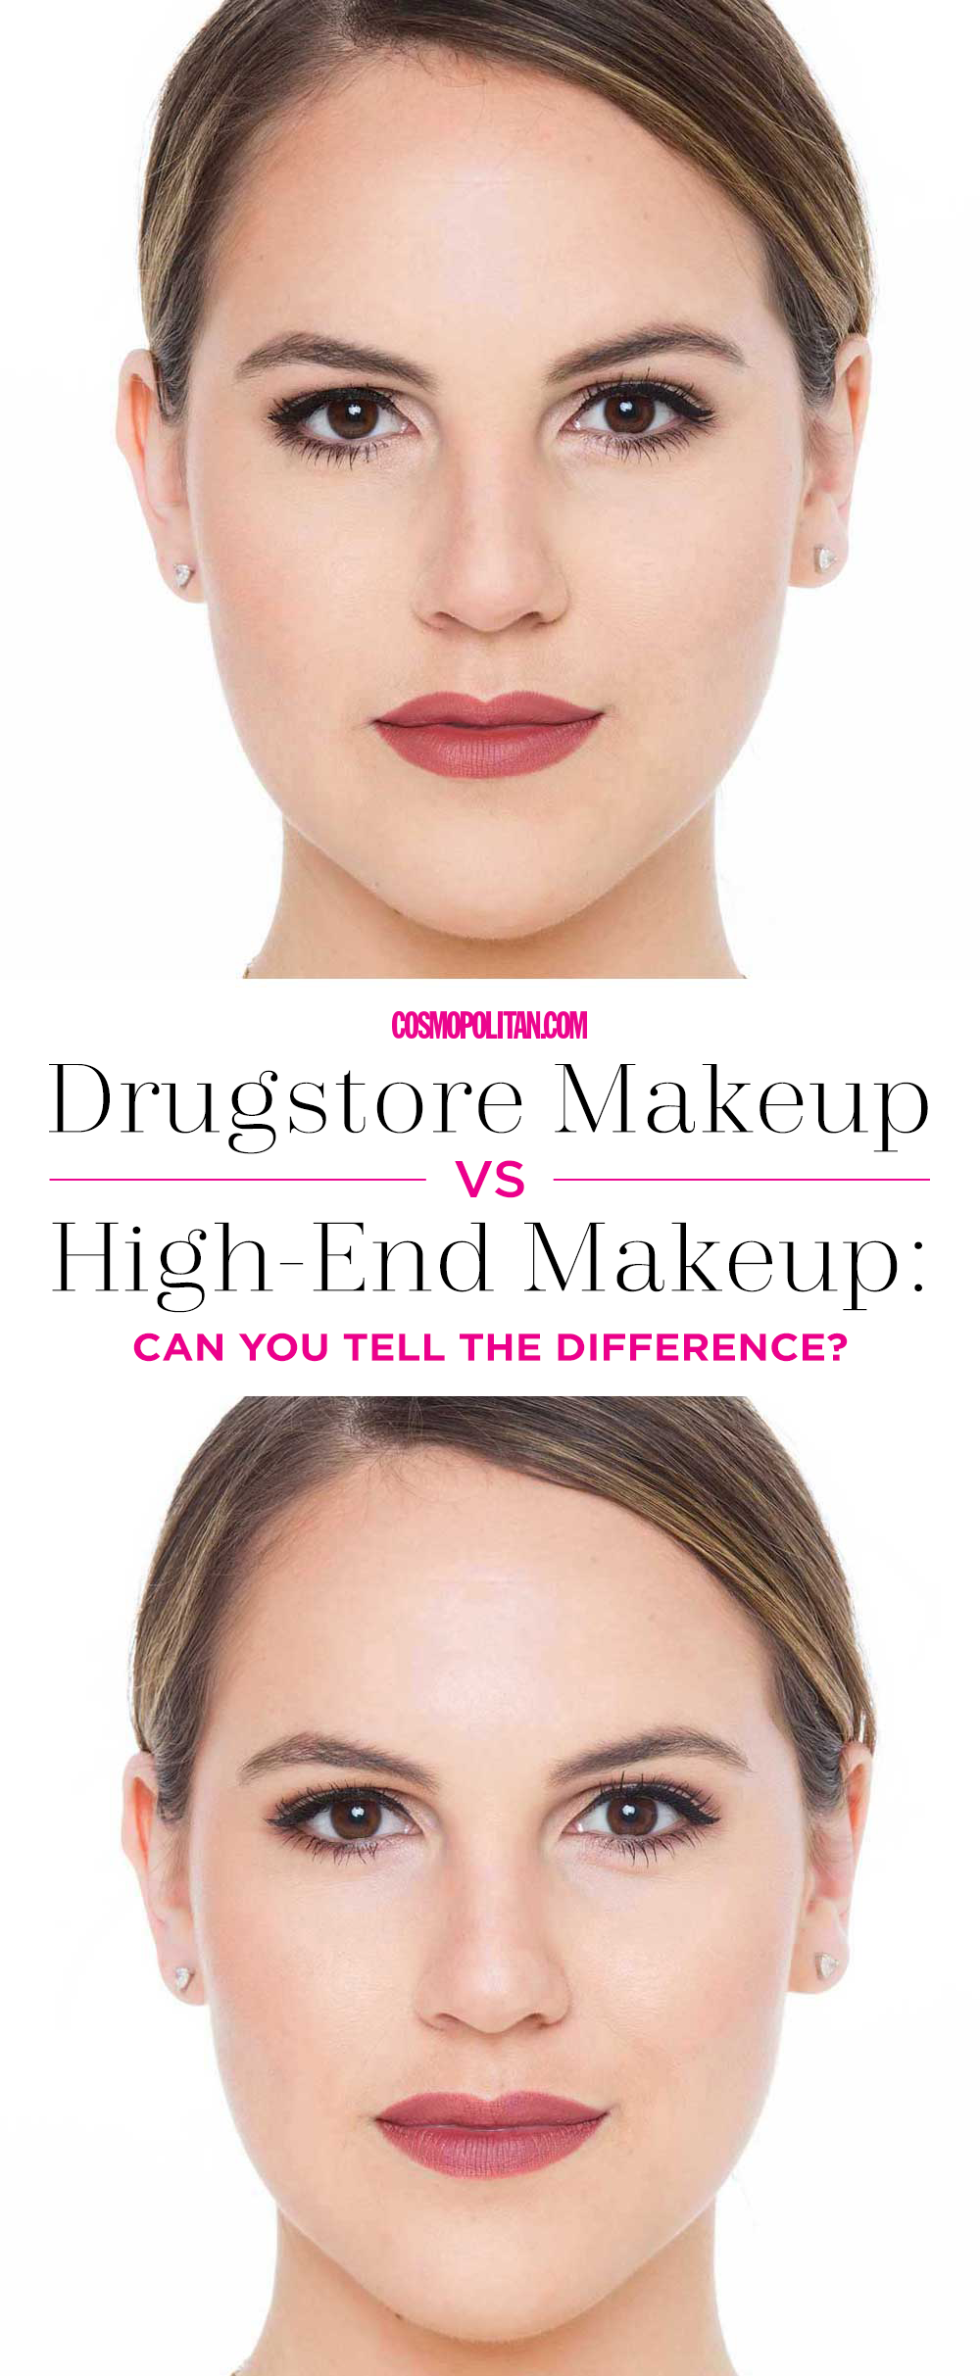 I Compared Drugstore and Department Store Makeup, and the Results Were Surprising